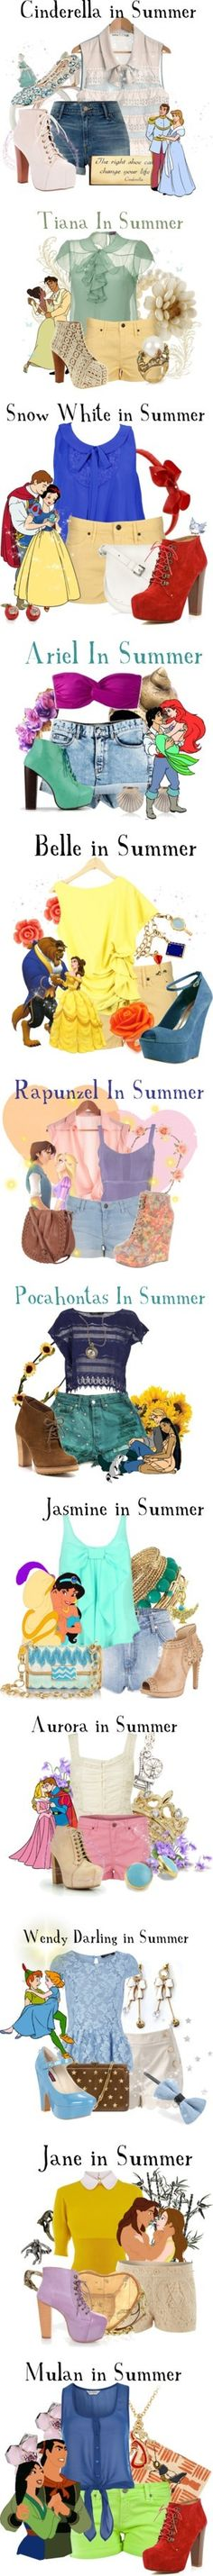 I absolutely would wear the outfits of Cinderella, Snow White, Rapunzel, Pocahontas, and Mulan!! Love those shoes too!!!!